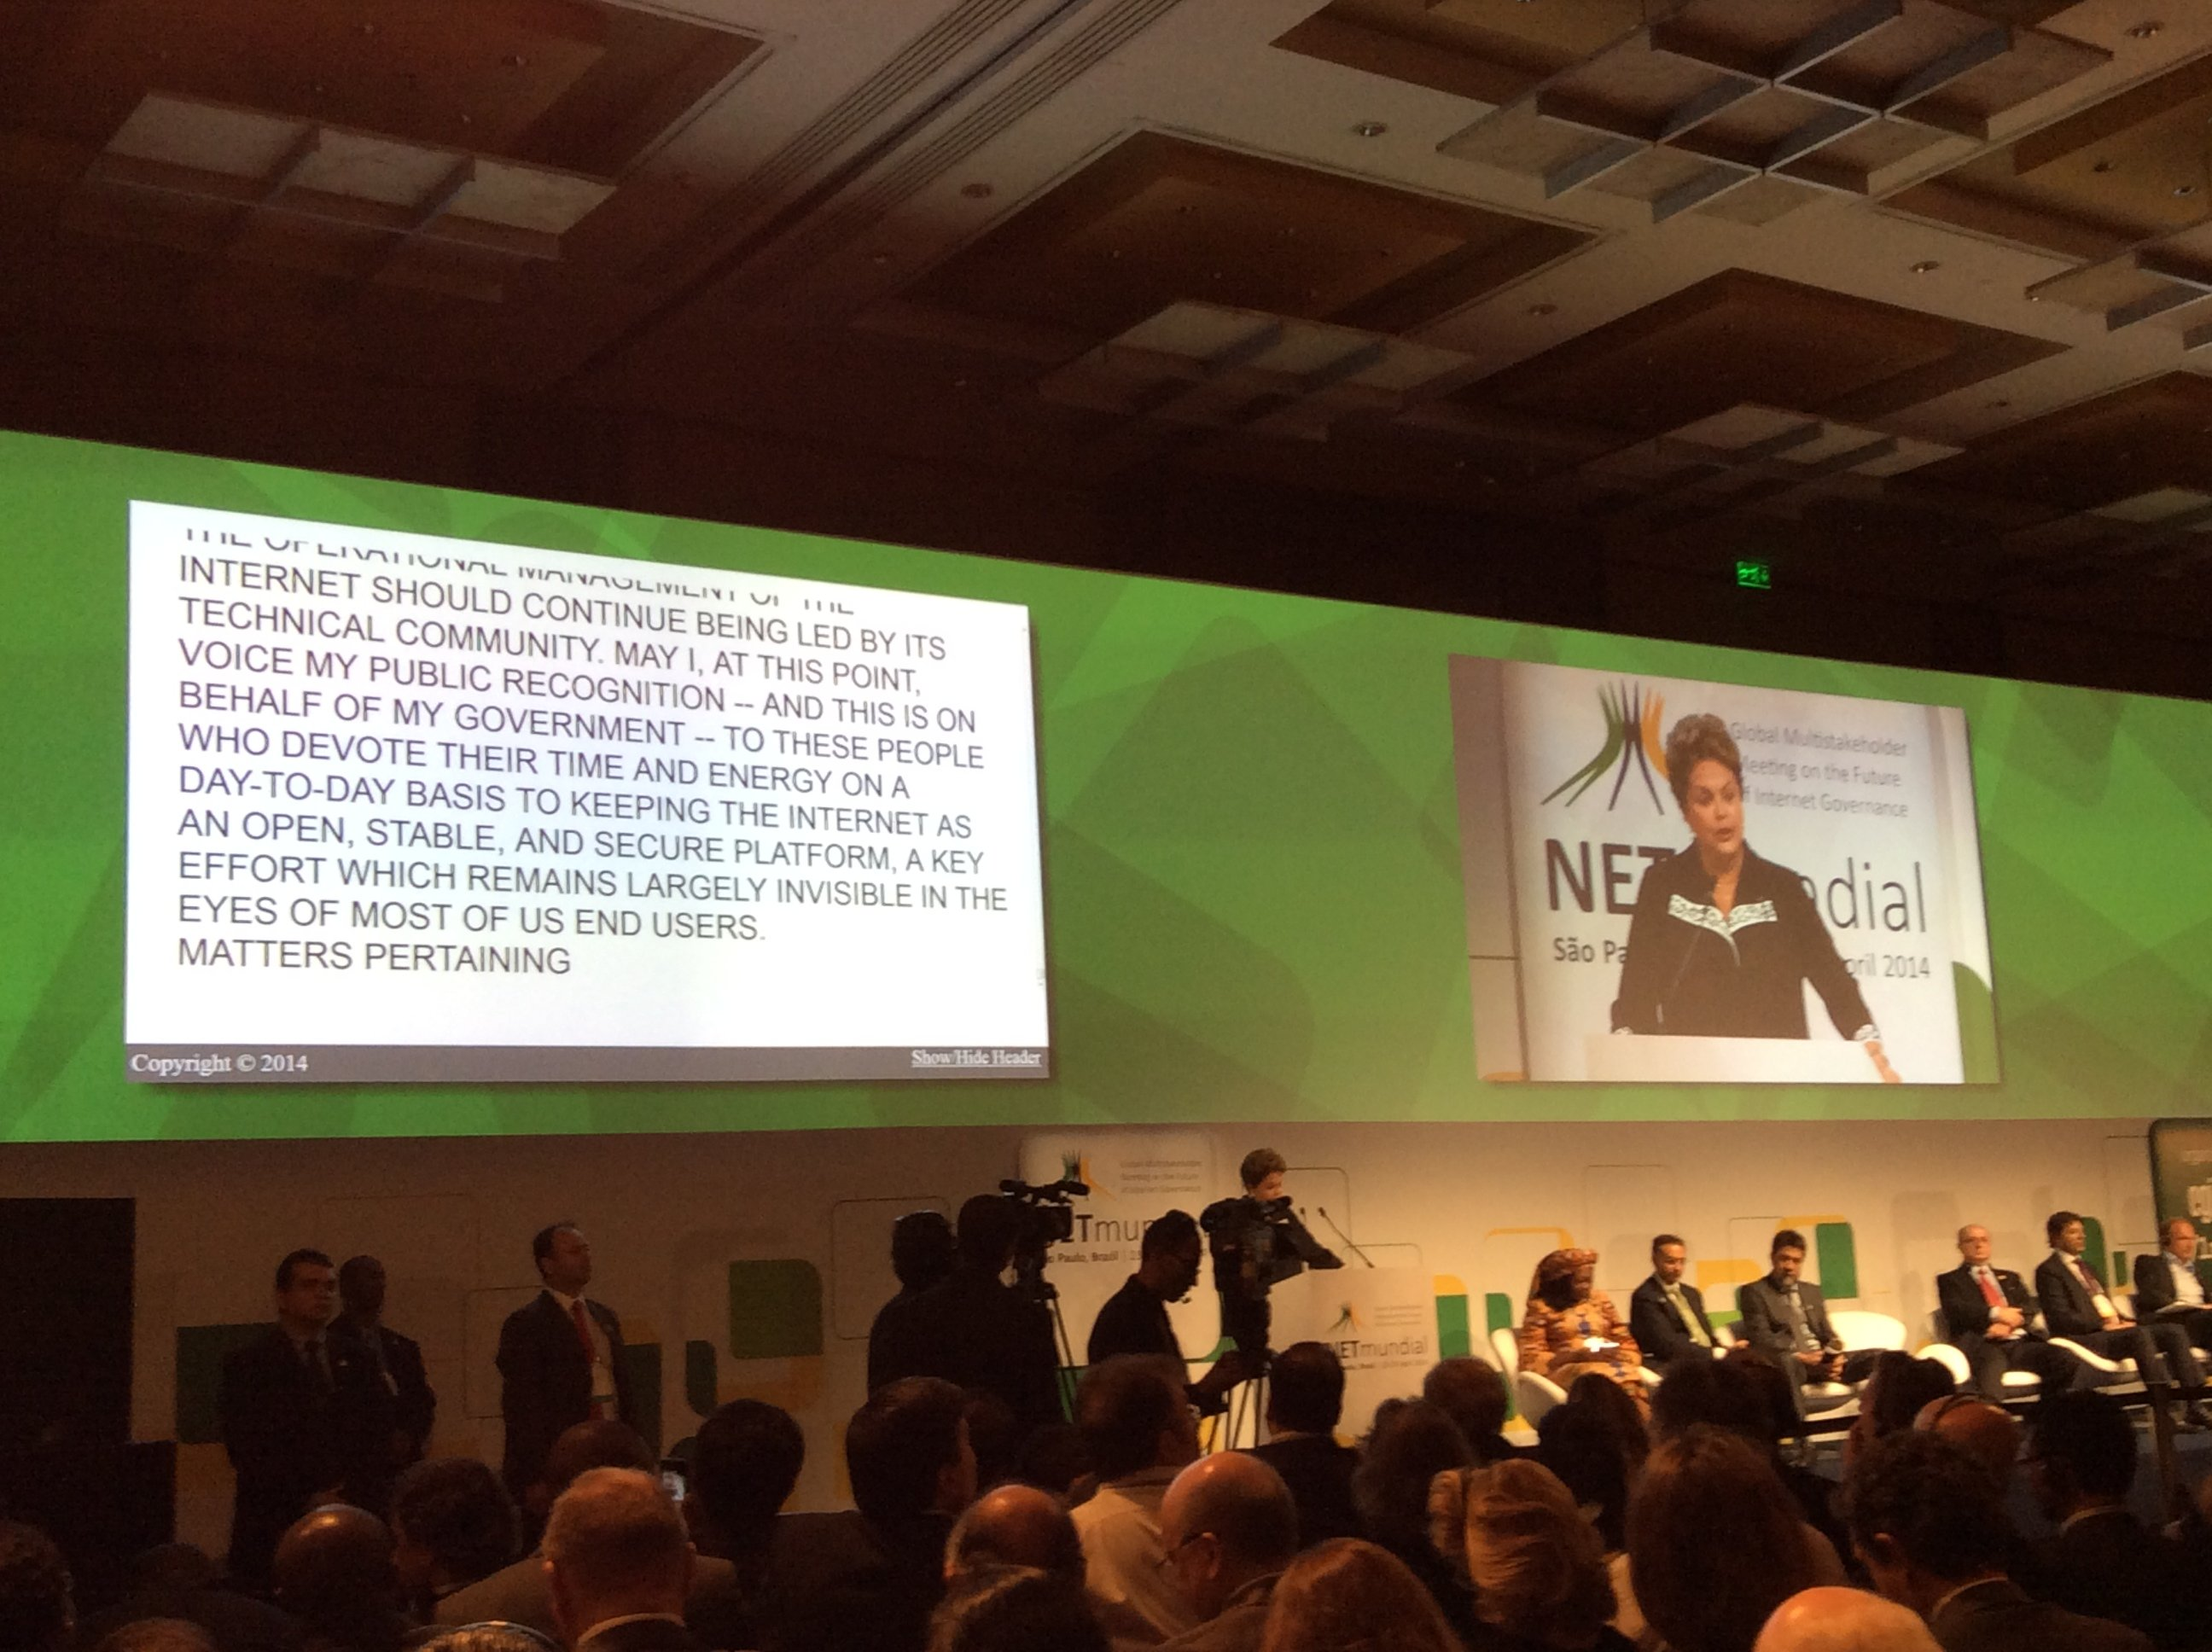 Brazilian President Dilma Rousseff addresses the NETmundial conference.